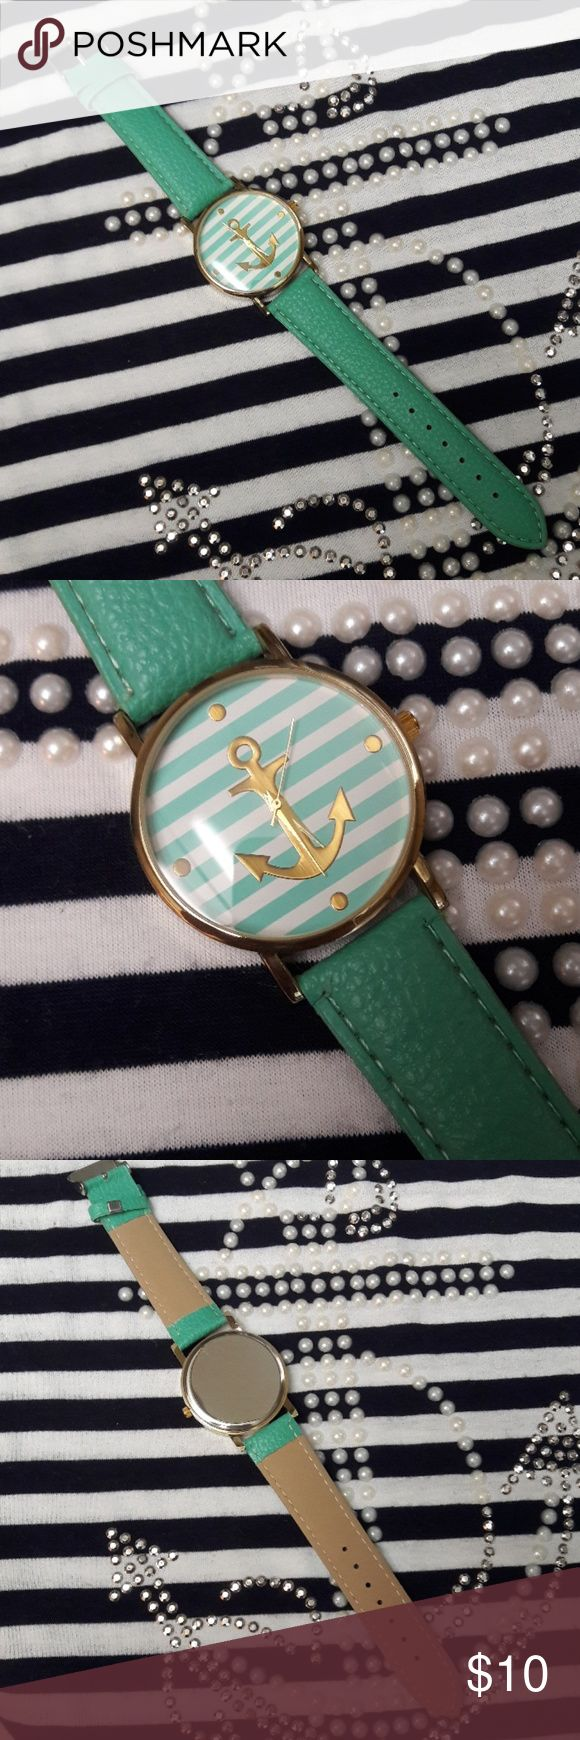 "New Mint Green Anchor Watch New in Package Mint Green Vegan Leather adjustable strap with 1 1/2"" round face (trendy larger size) stripped face with gold anchor.  Waiting to go on that cruise with you! Accessories Watches"